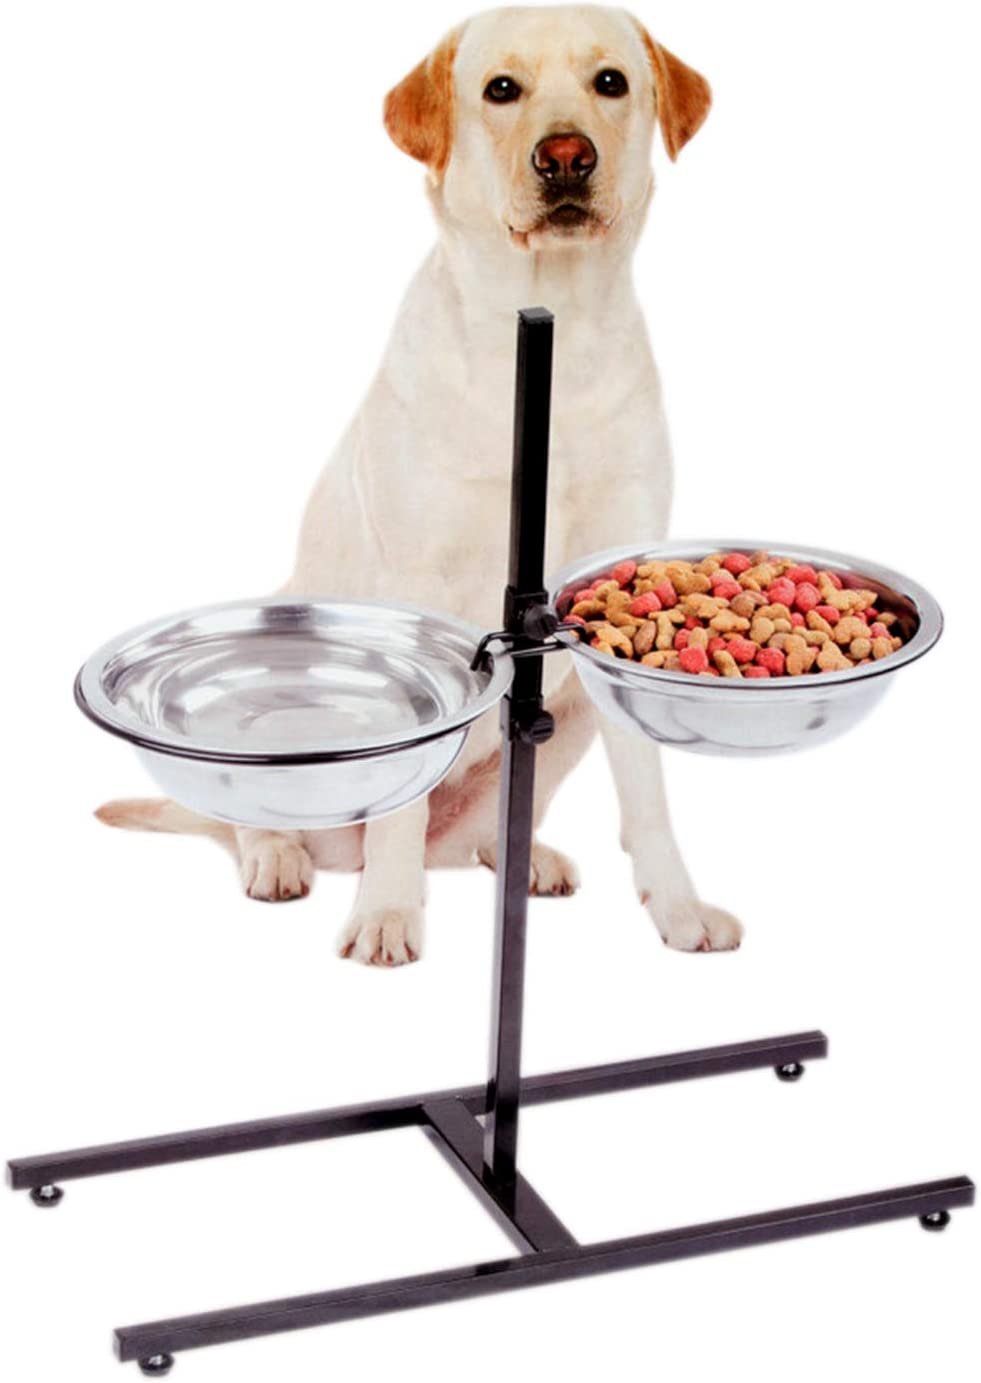 Etna Adjustable Height Elevated Pet Feeder - Raised Comfort Diner with Stainless Steel Food and Water Bowls for Dogs and Cats